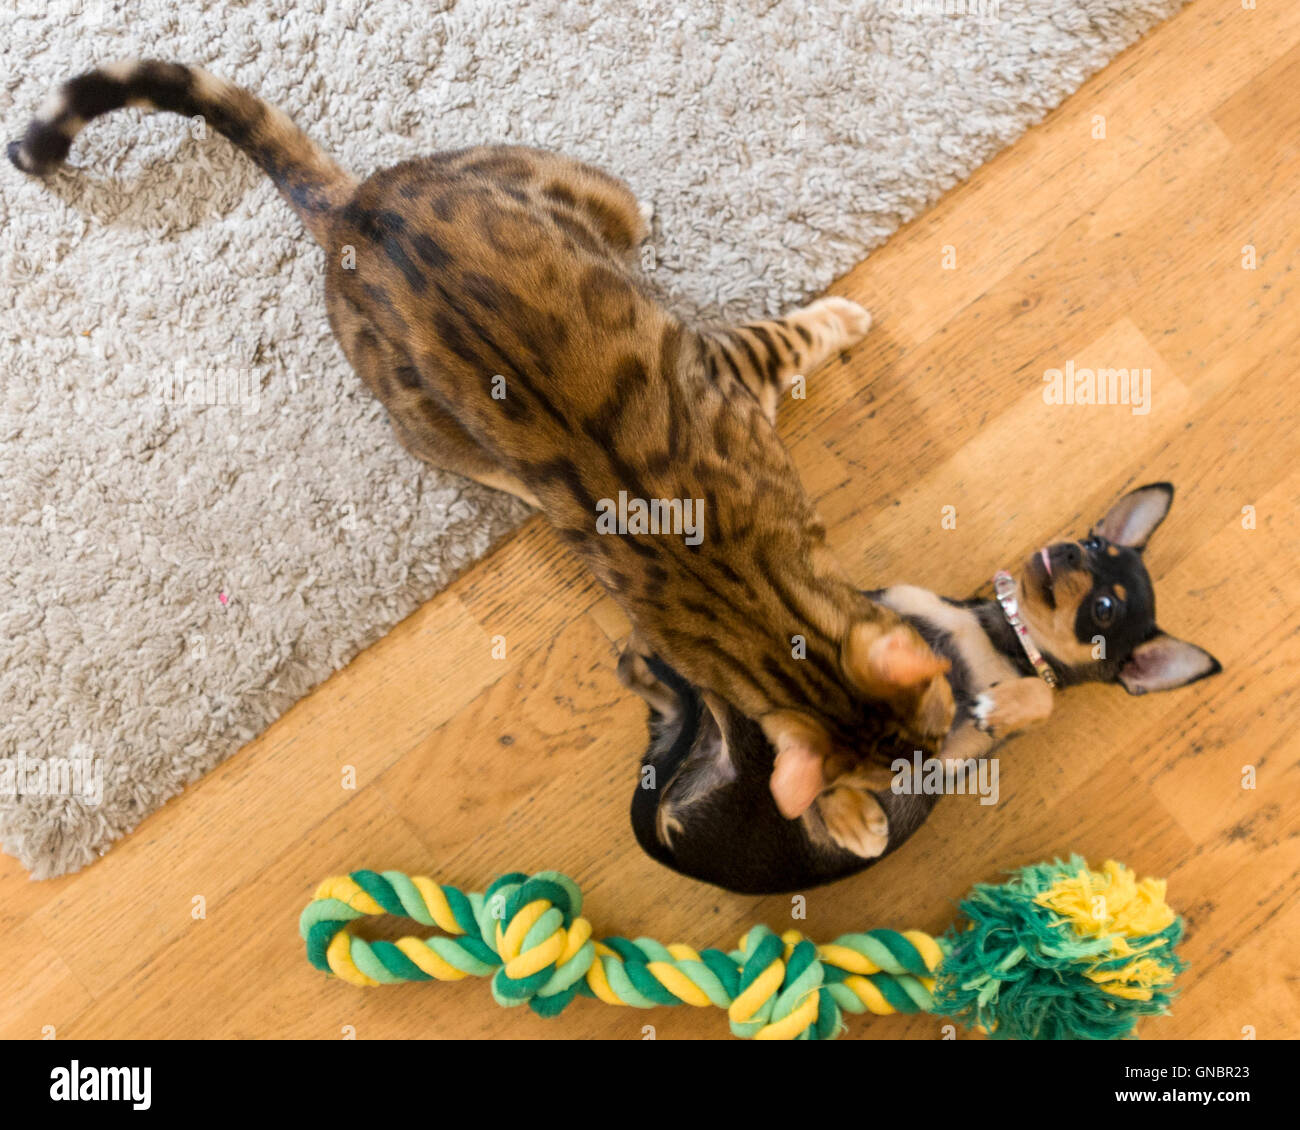 Female Bengal cat and female Chihuahua puppy play fighting over pet toy  Model Release: No.  Property Release: Yes - Stock Image